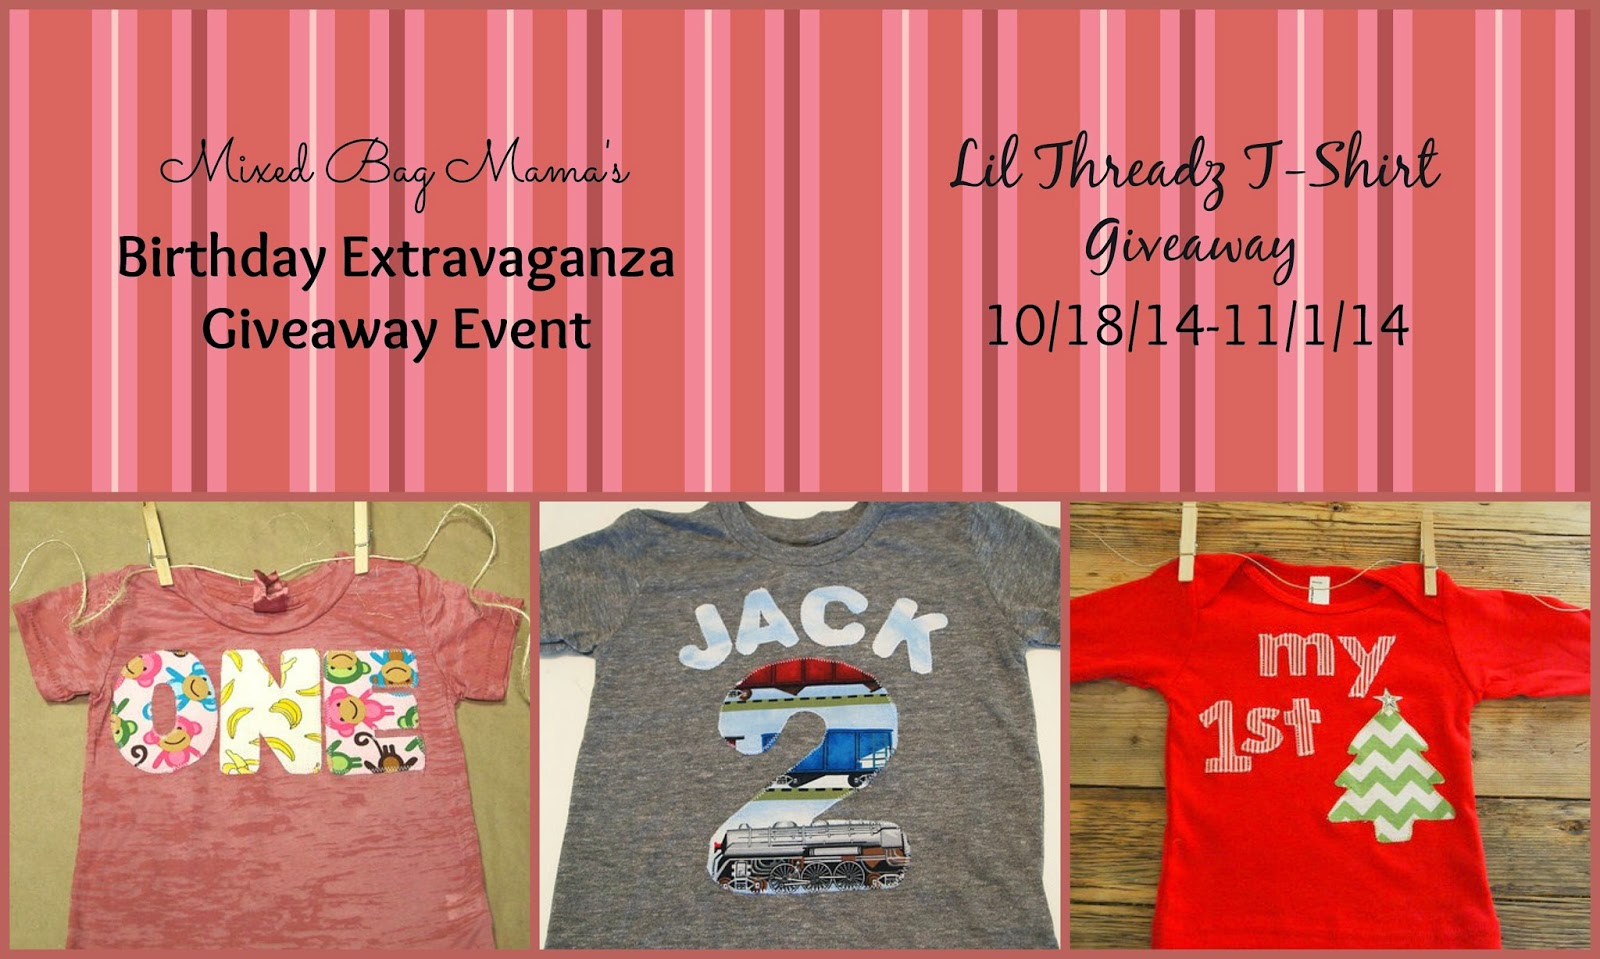 Enter the Lil Threadz T-Shirt Giveaway. Ends 11/1.